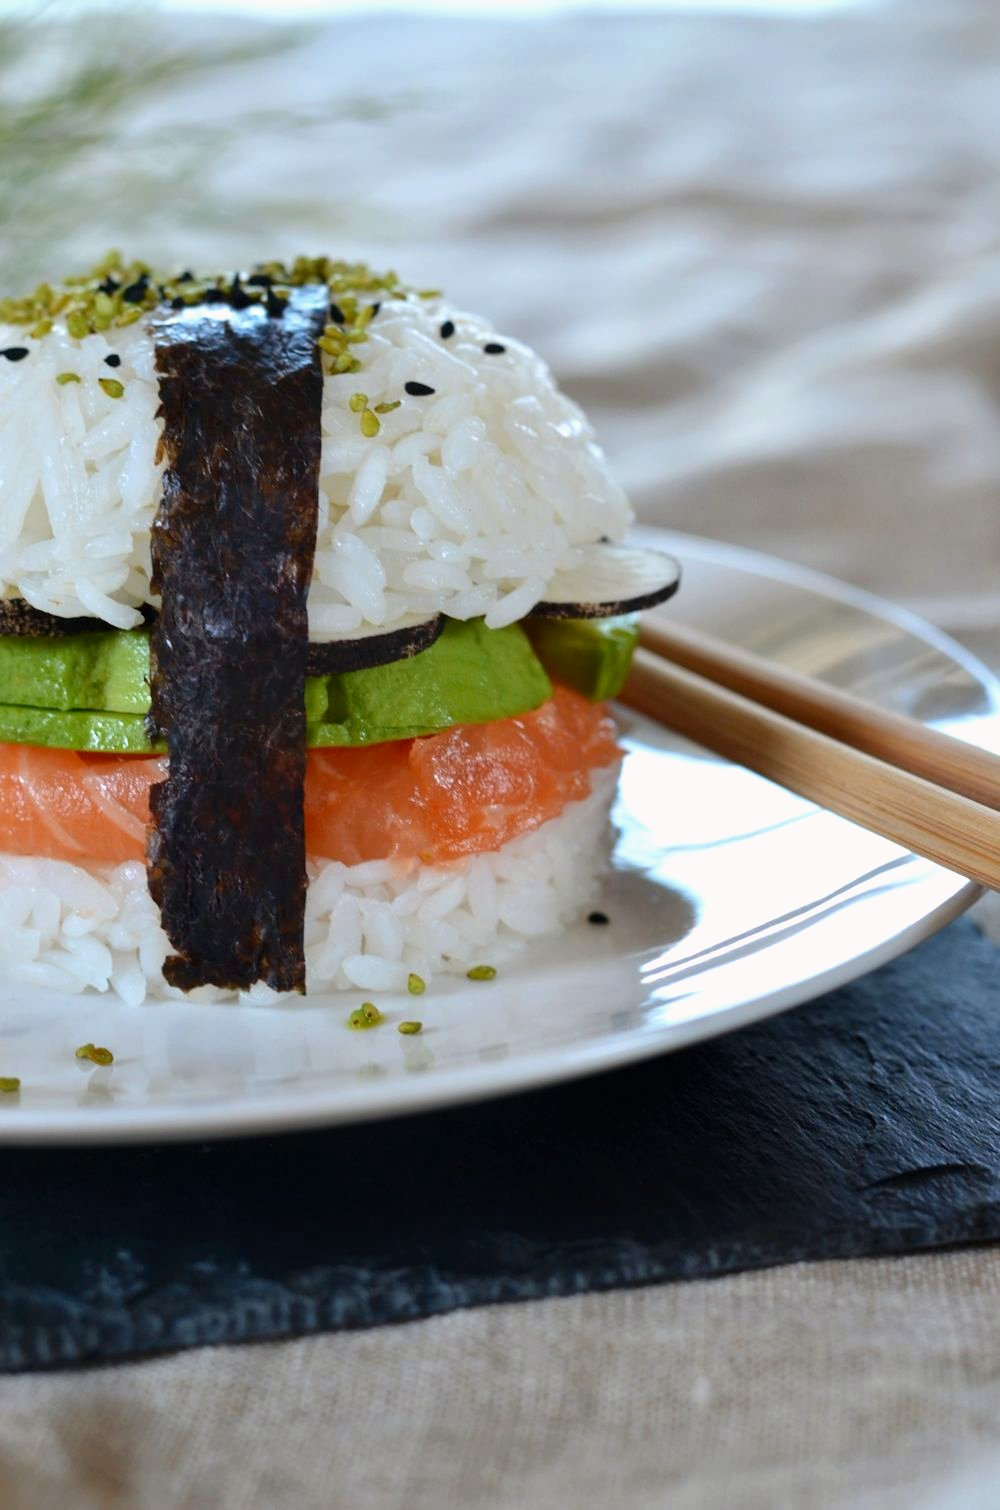 sushi burger saumon avocat et radis noir recette tangerine zest. Black Bedroom Furniture Sets. Home Design Ideas